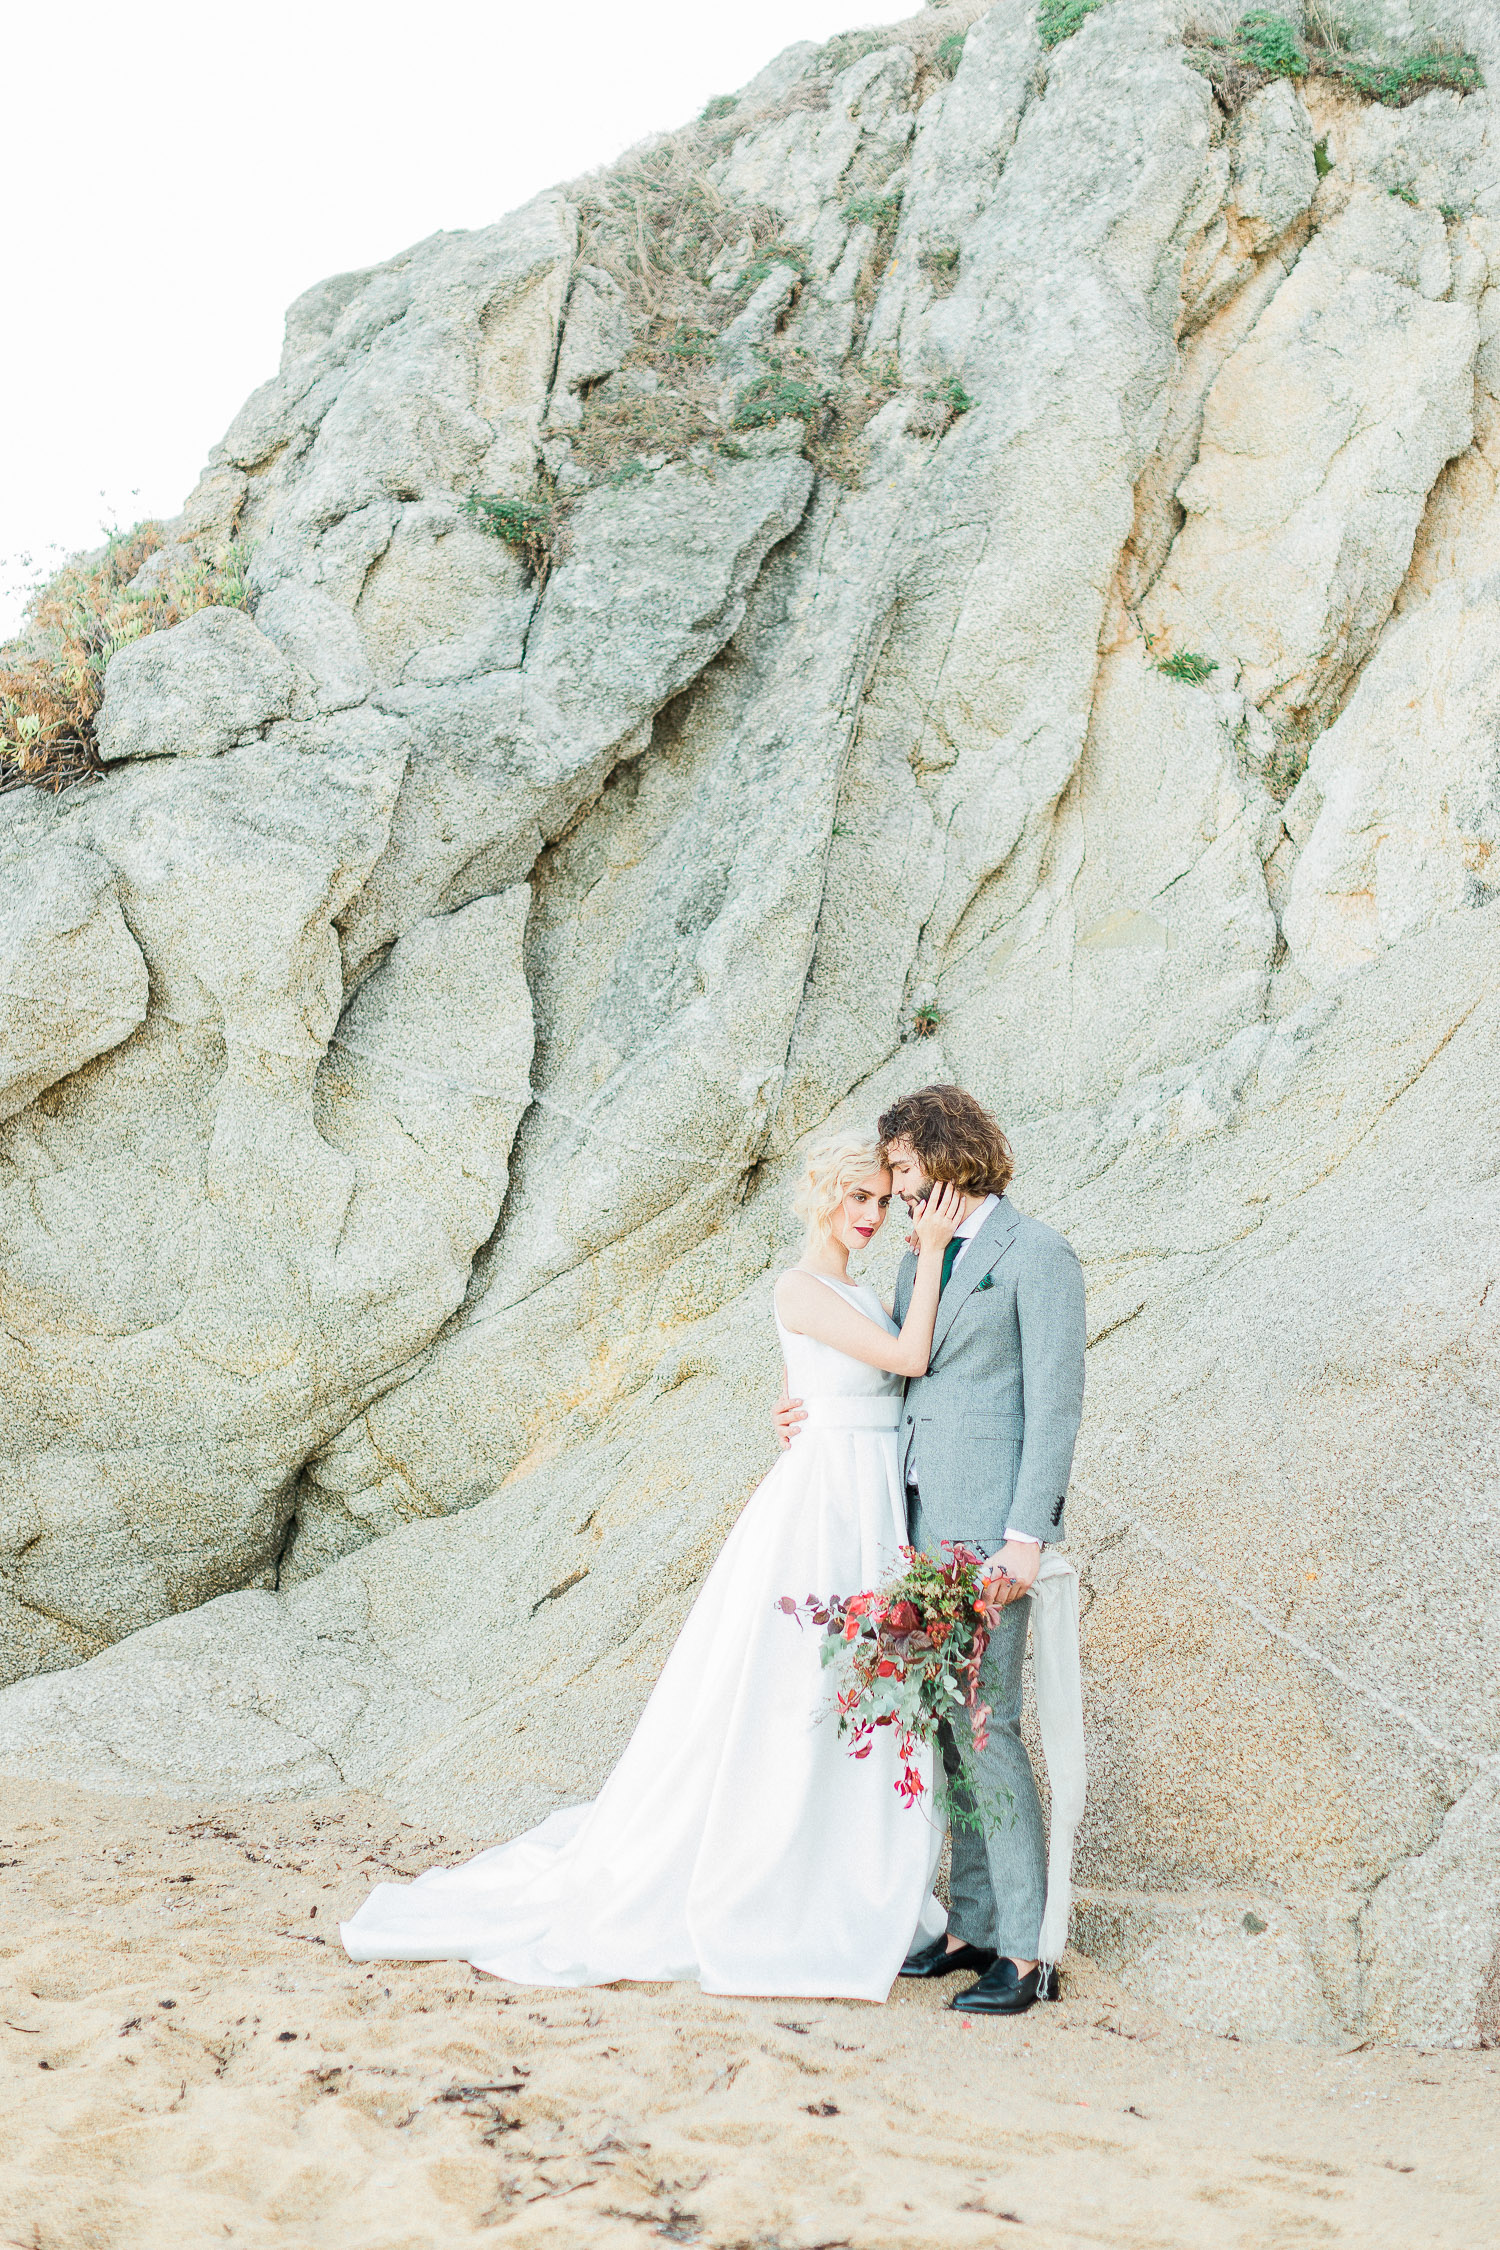 a romantic couple portrait on a rocky beach elopement at in Greece